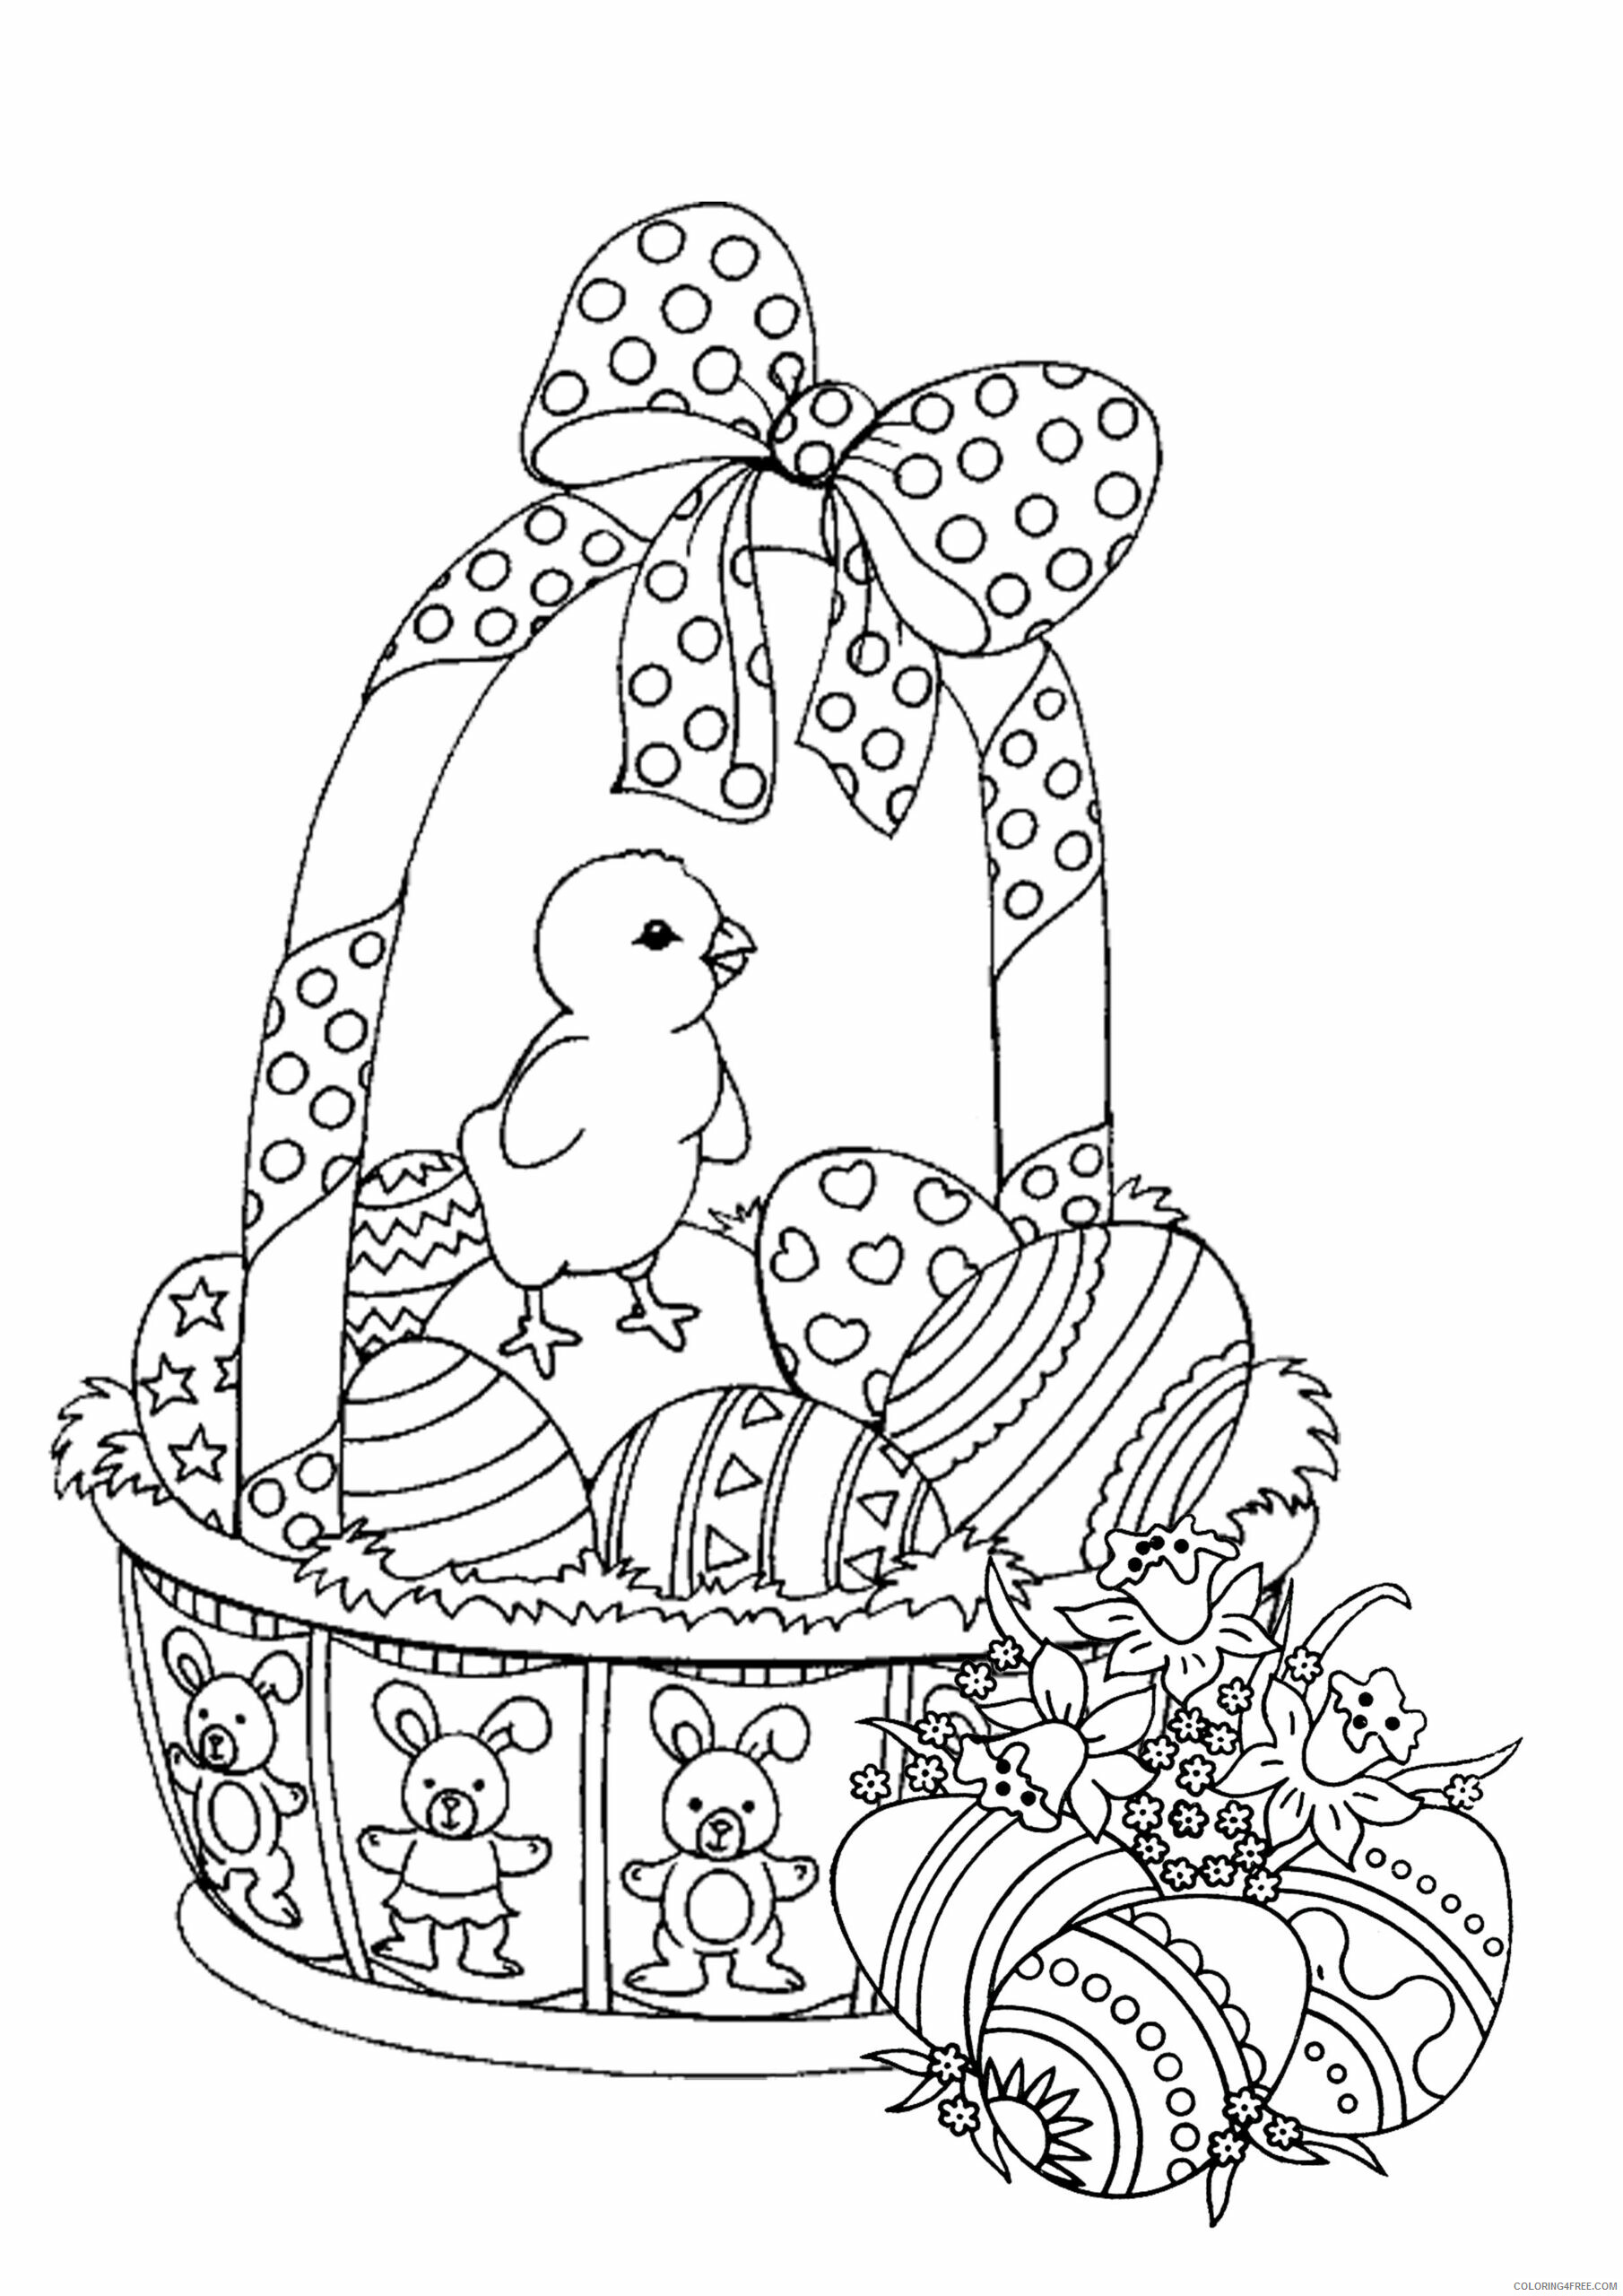 Adult Easter Coloring Pages Easter Basket for Adults Printable 2020 246 Coloring4free